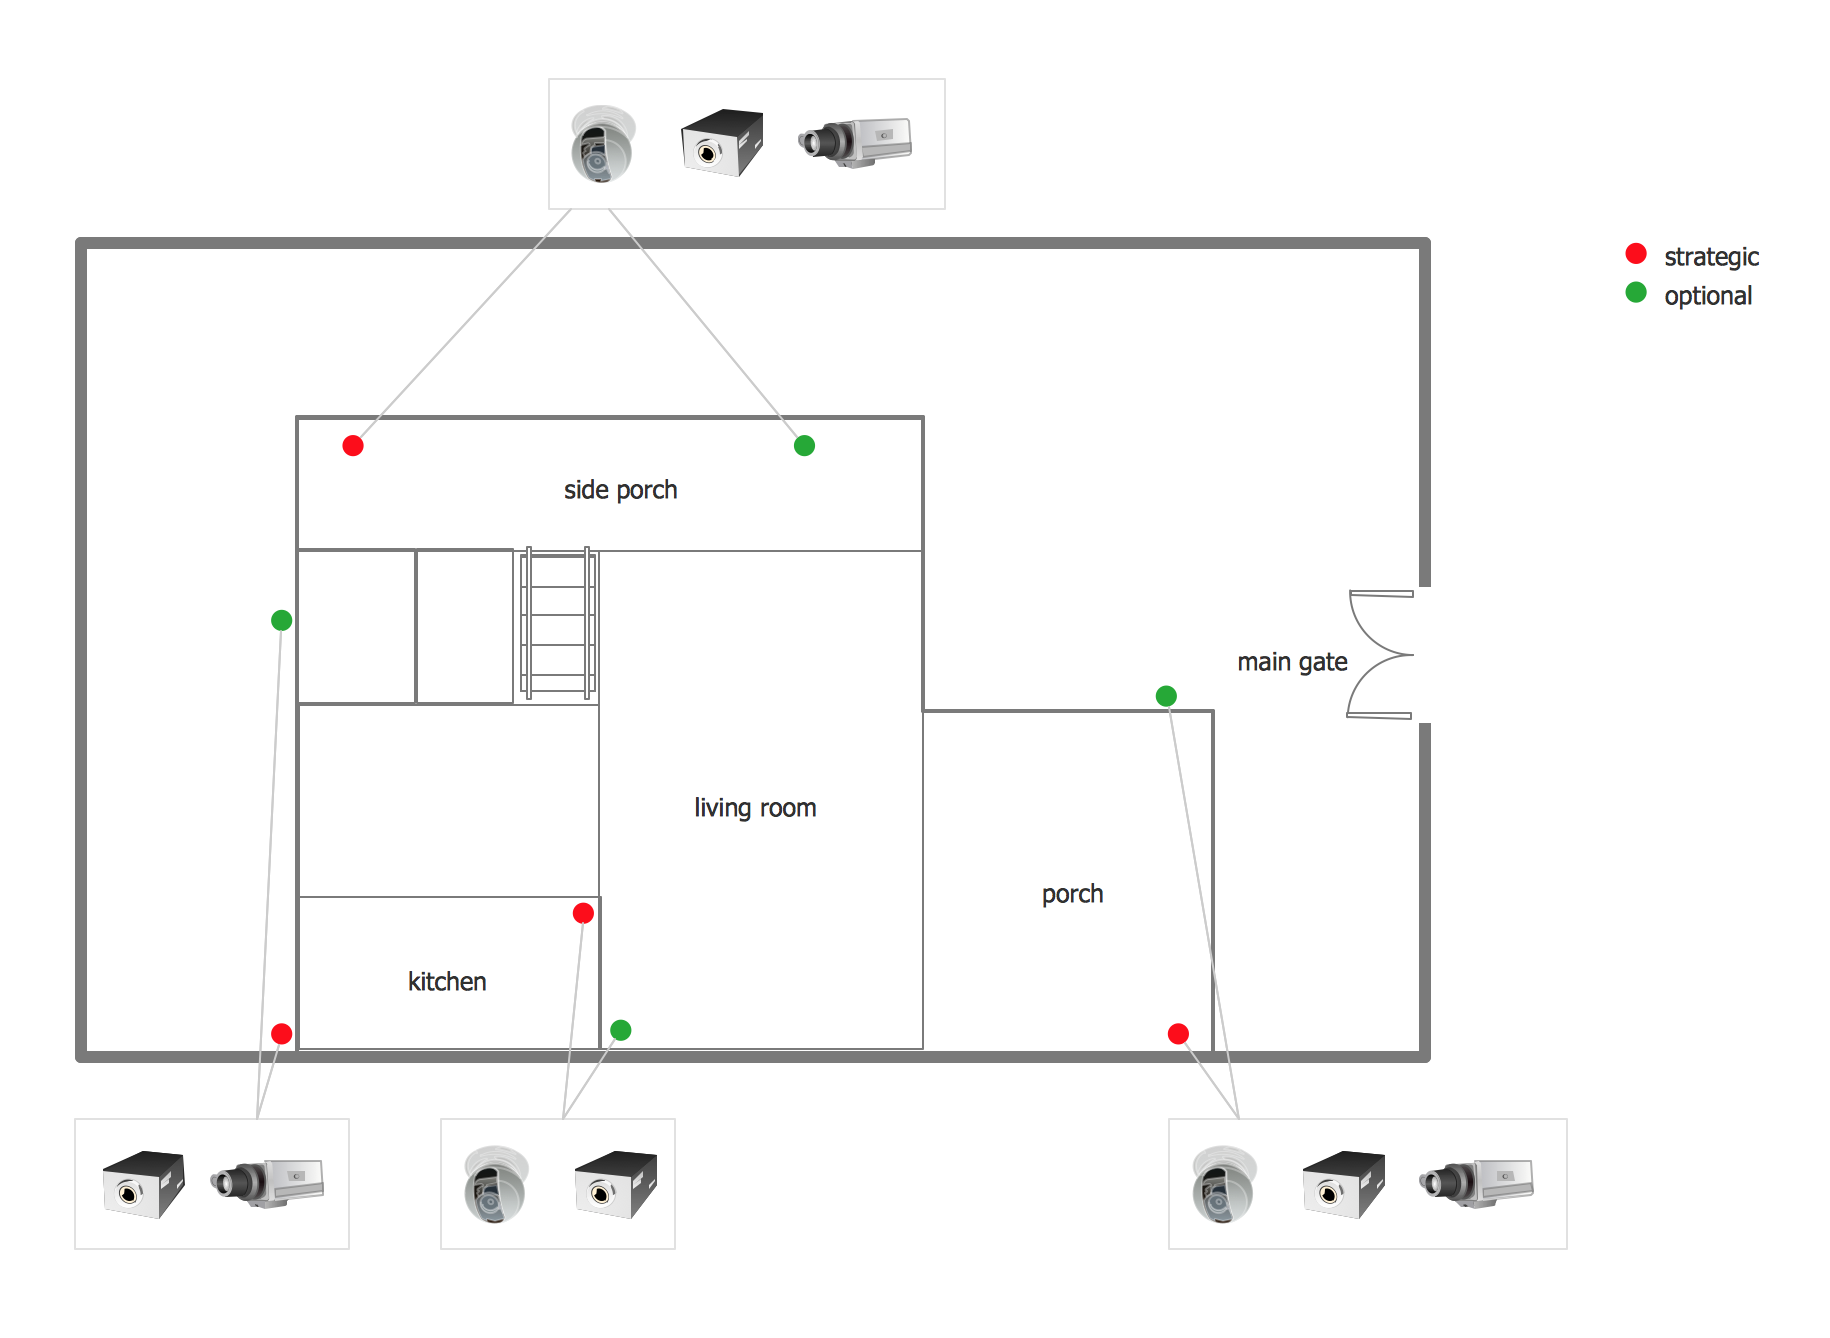 How to create cctv network diagram for Security camera placement software